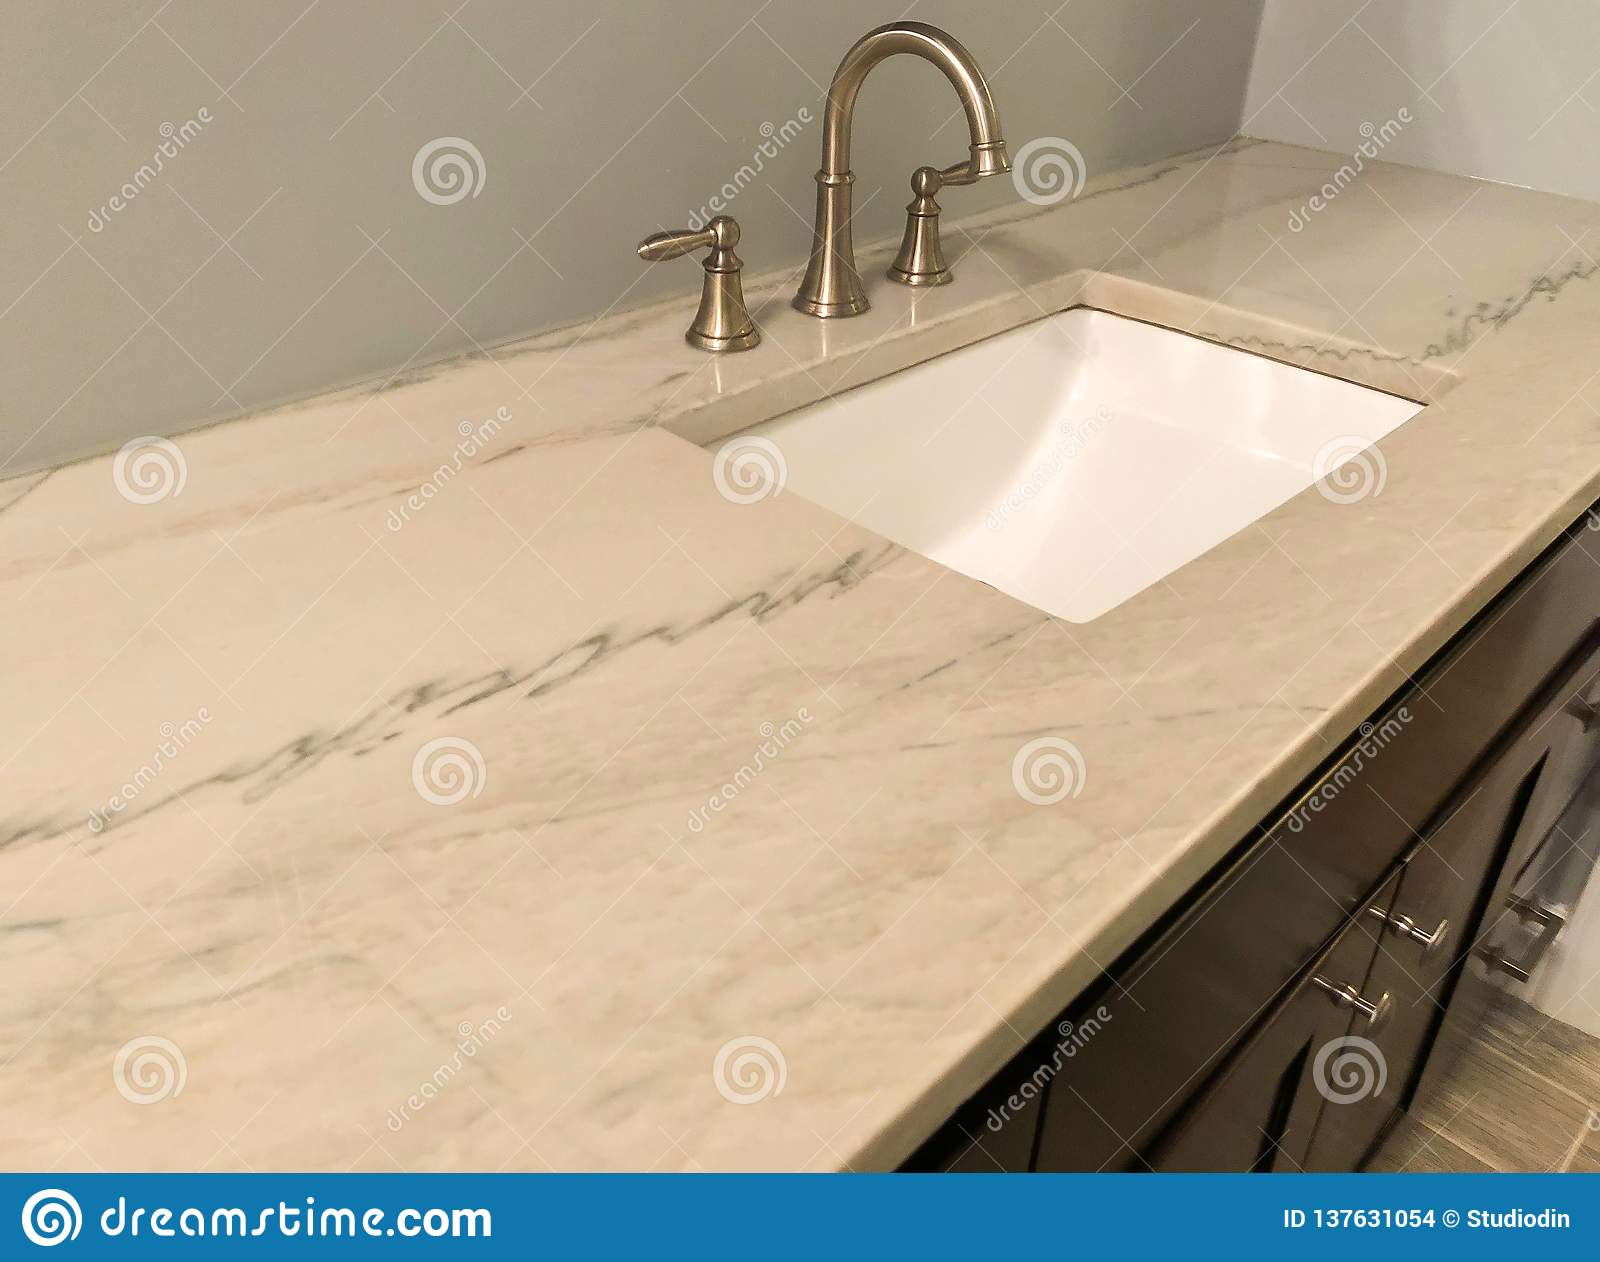 Granite countertop with white sink and chrome faucet on dark wood cabinets, tile floor inside bathroom